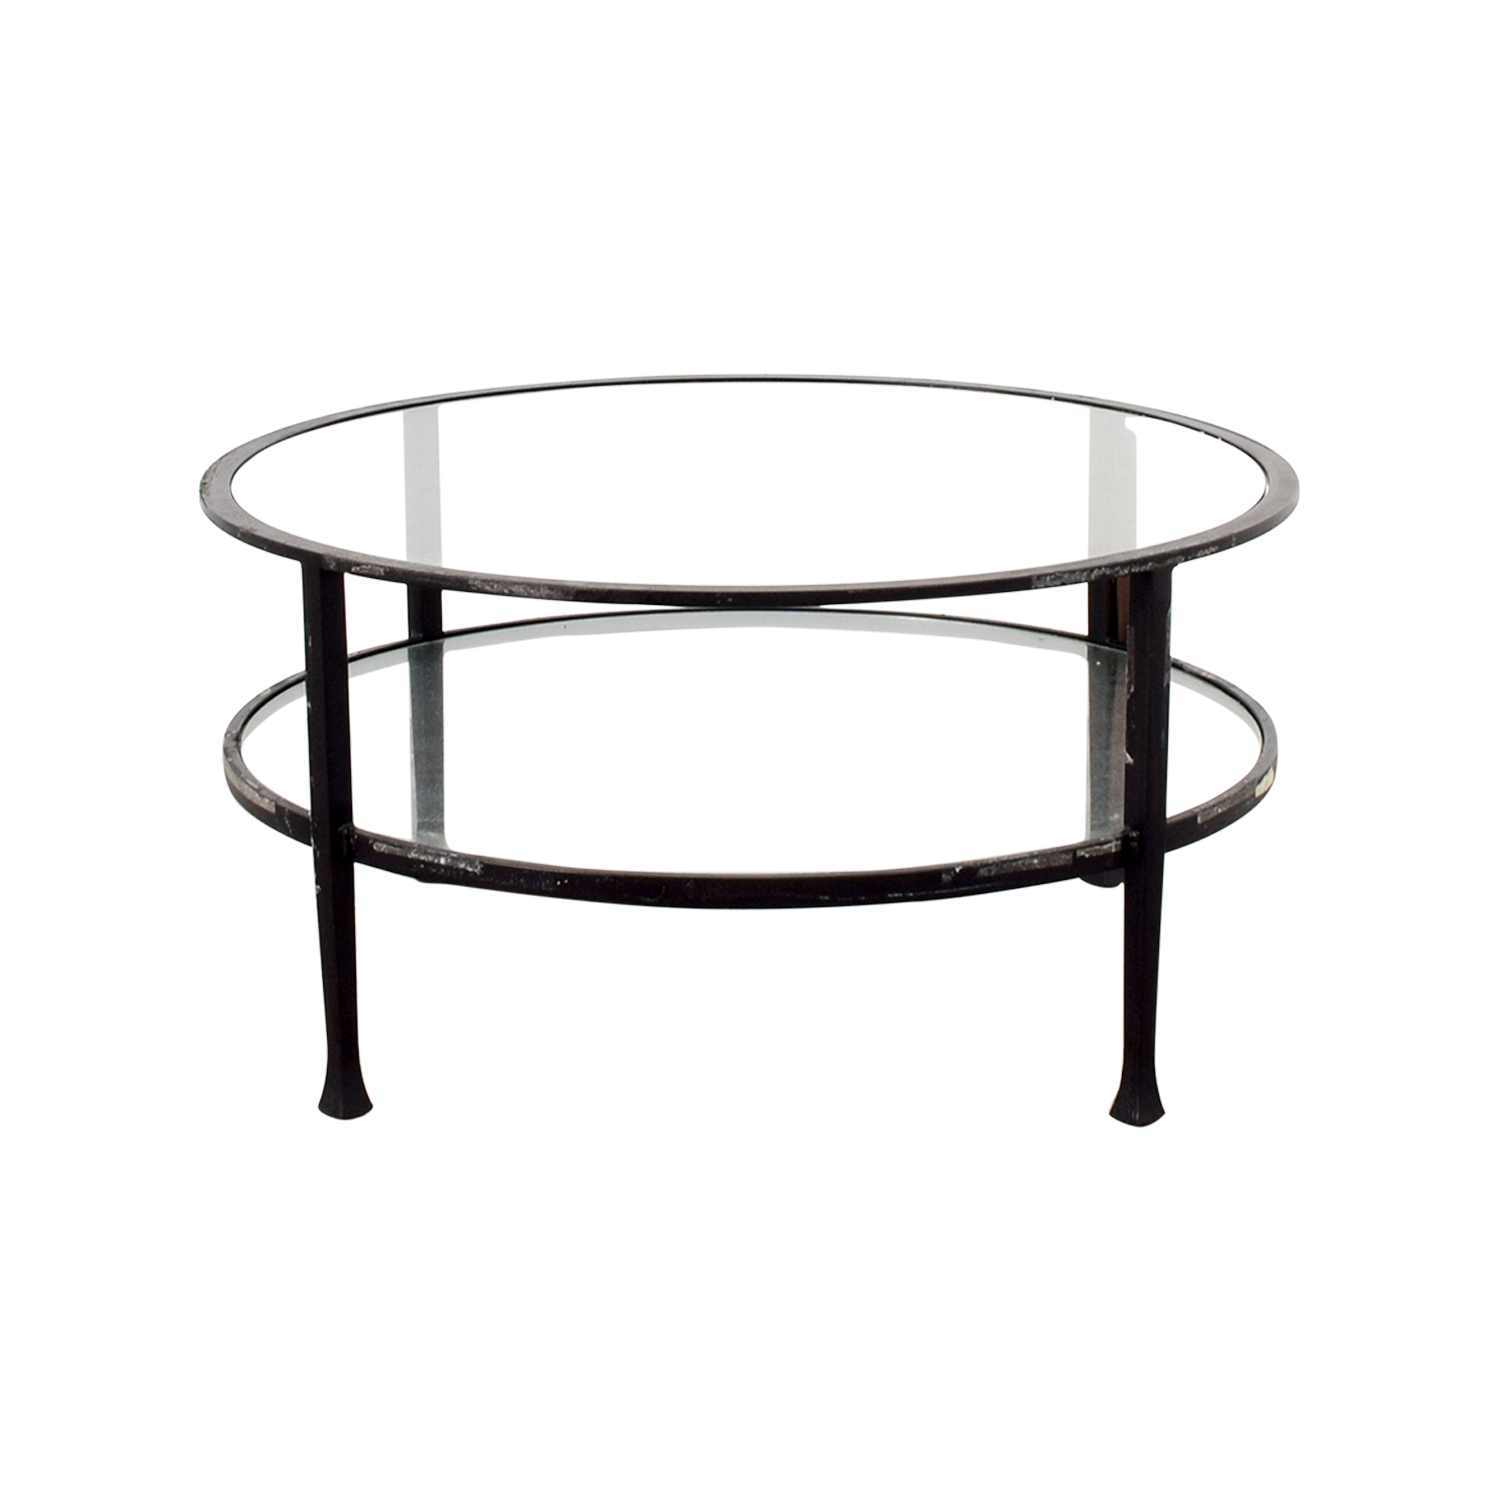 - 90% OFF - Pottery Barn Pottery Barn Round Glass Coffee Table / Tables